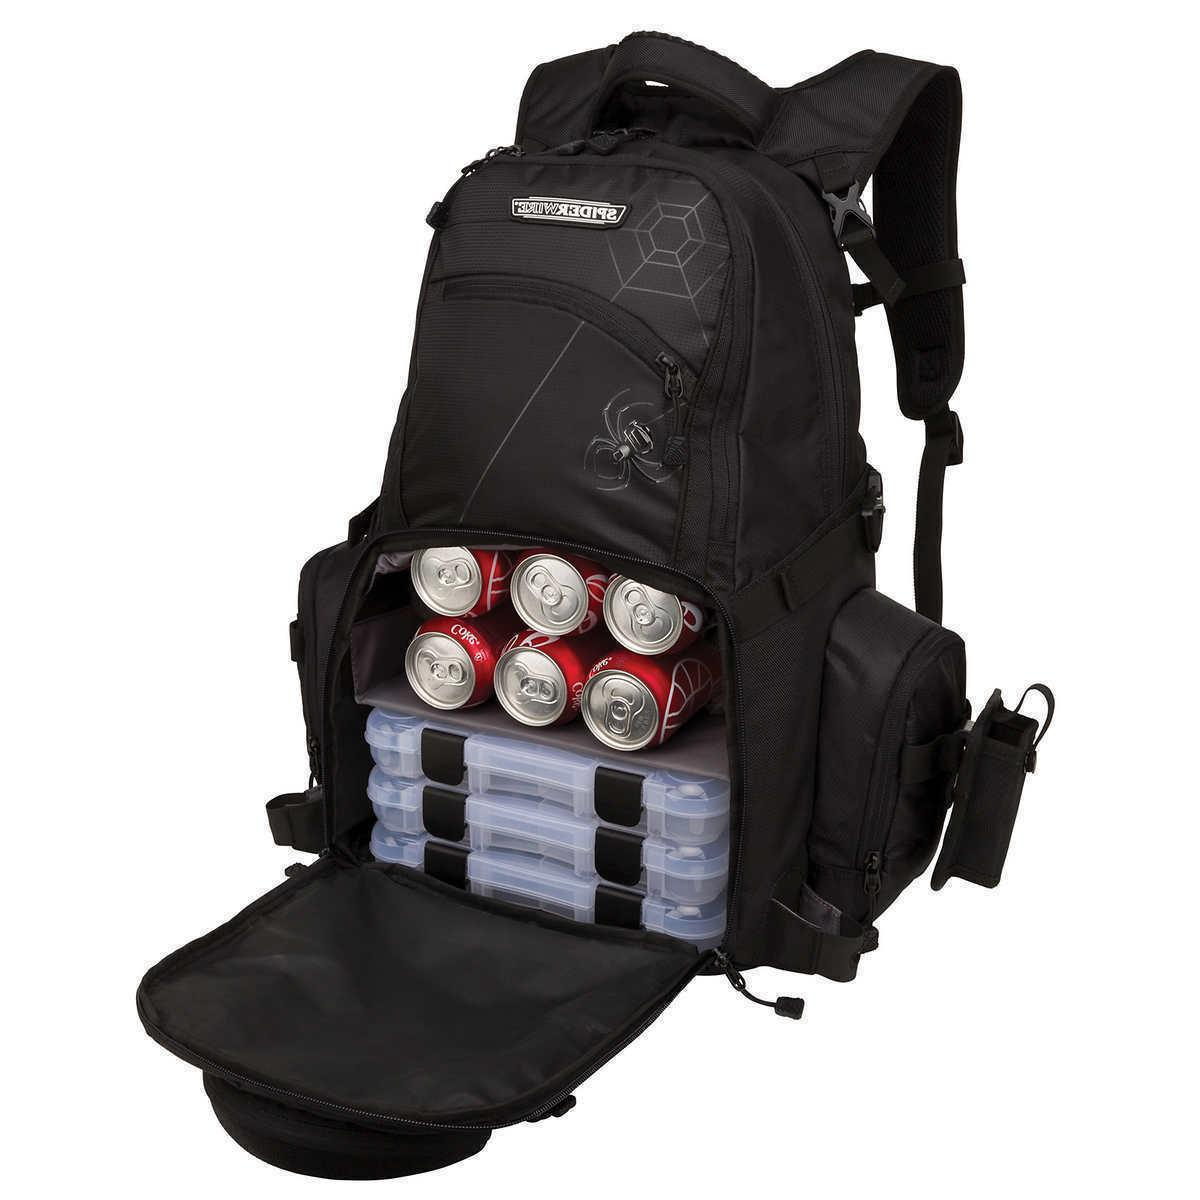 tackle backpack fishing rod carry system adjustable